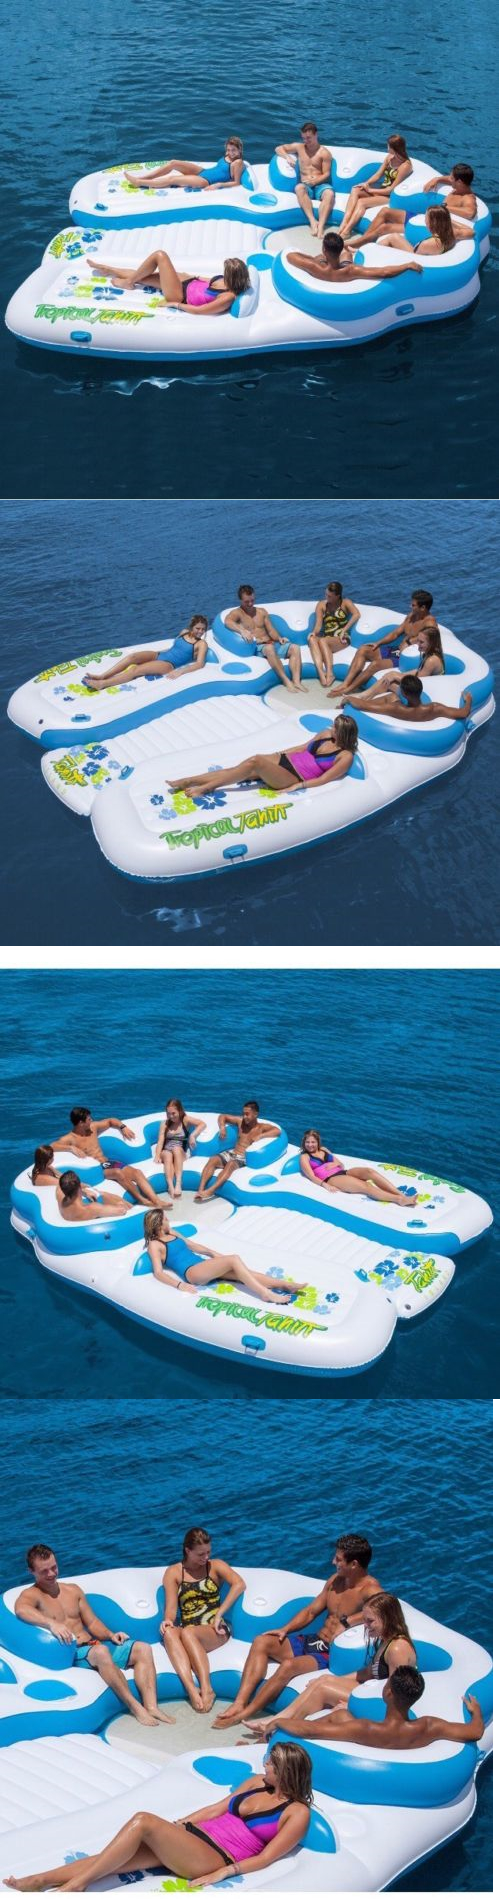 Inflatable Floats And Tubes 79801: Tropical Tahiti Giant 7 Person Inflatable  Raft Pool Lake Ocean